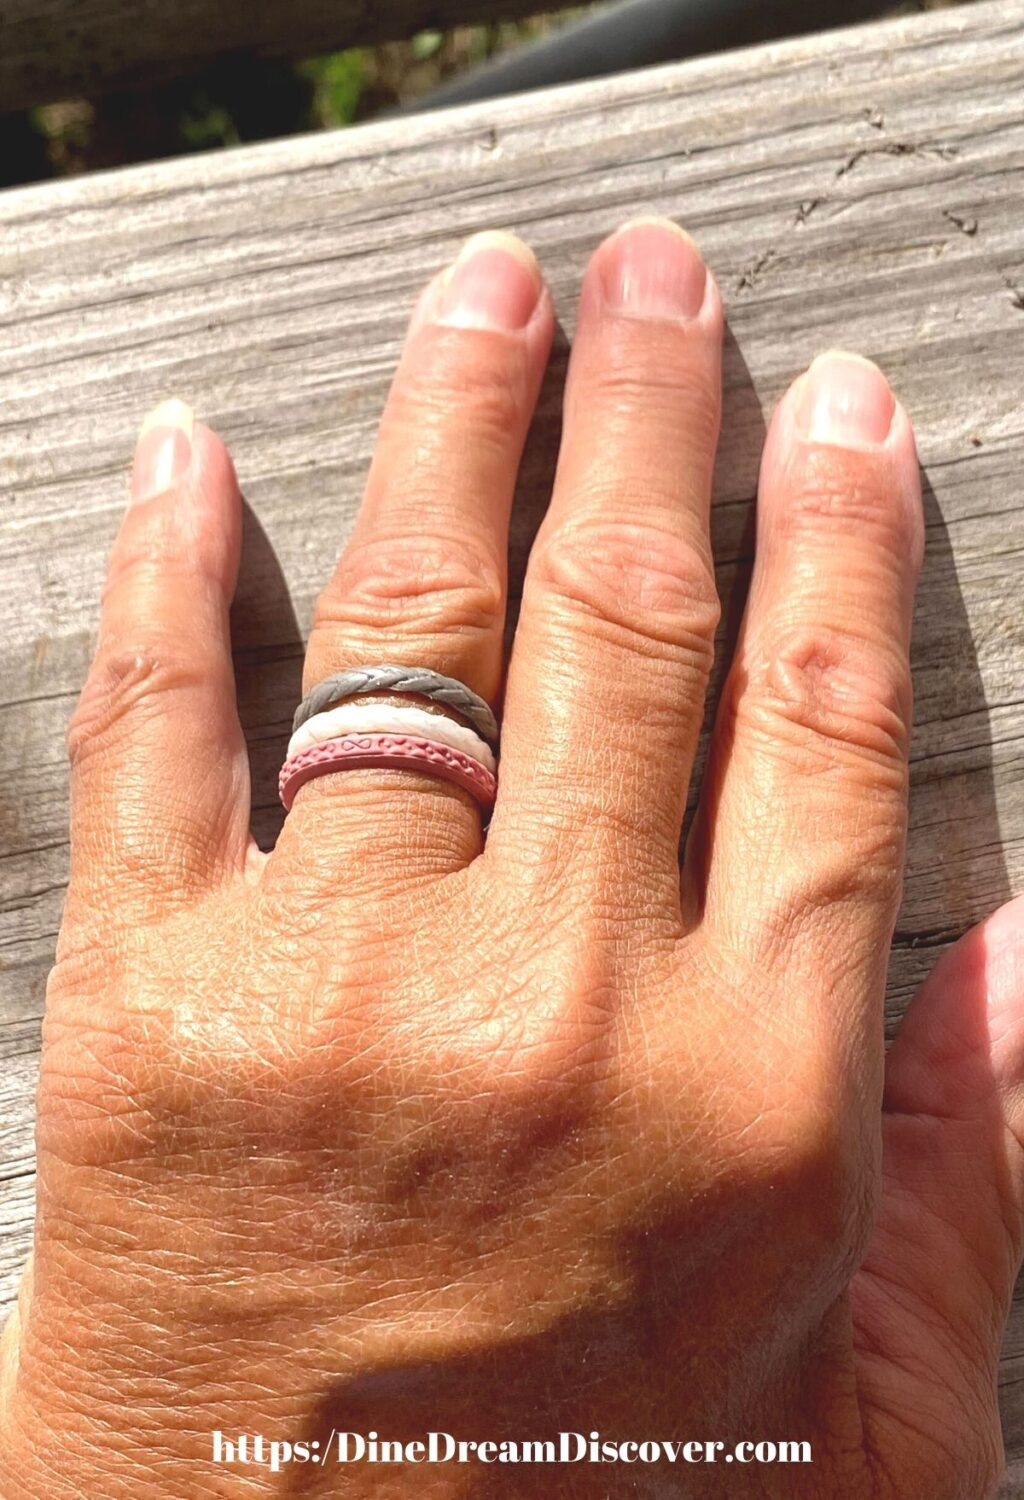 women's silicone rings